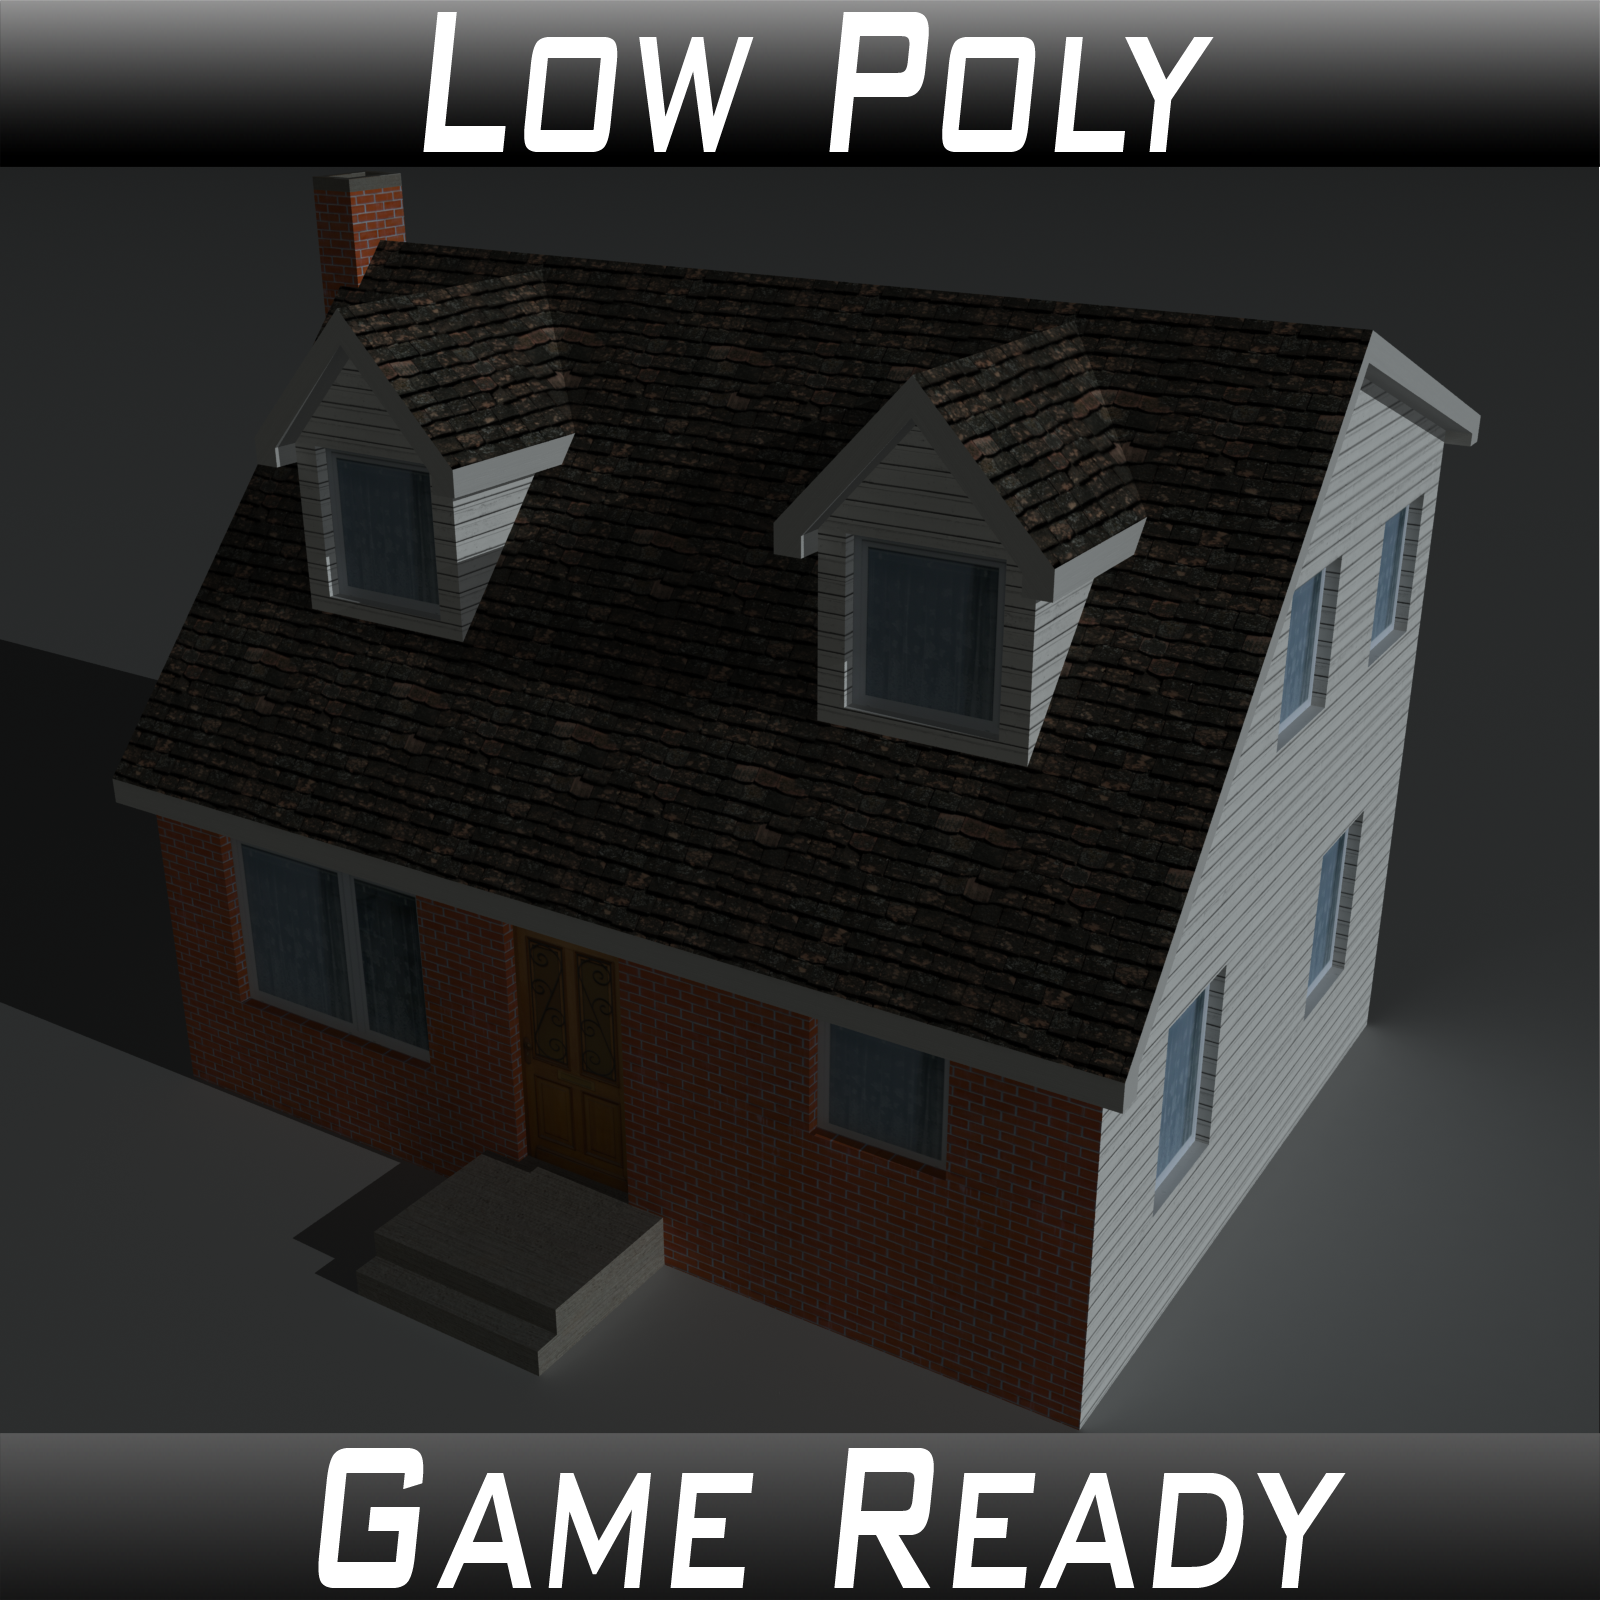 Low Poly House 6 - Extended Licence by 3dlands